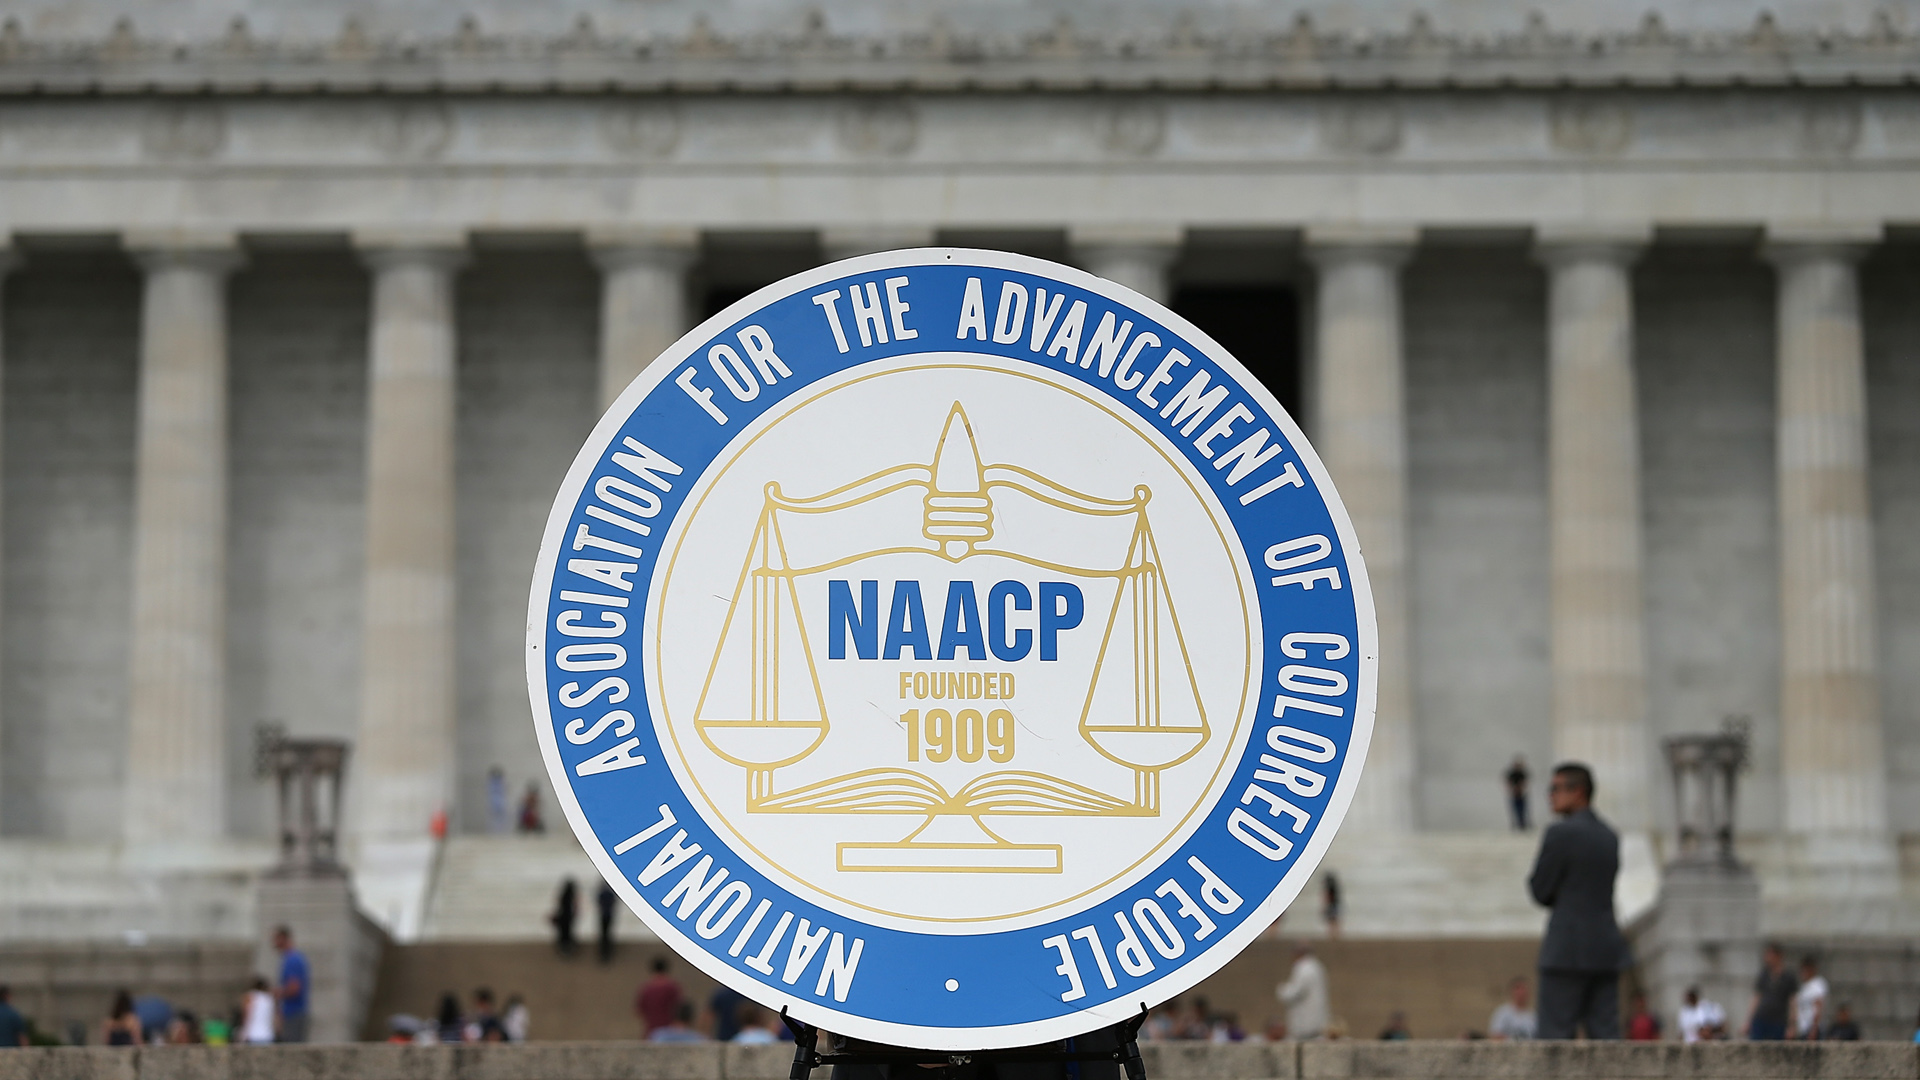 naacp logo court48246355-159532